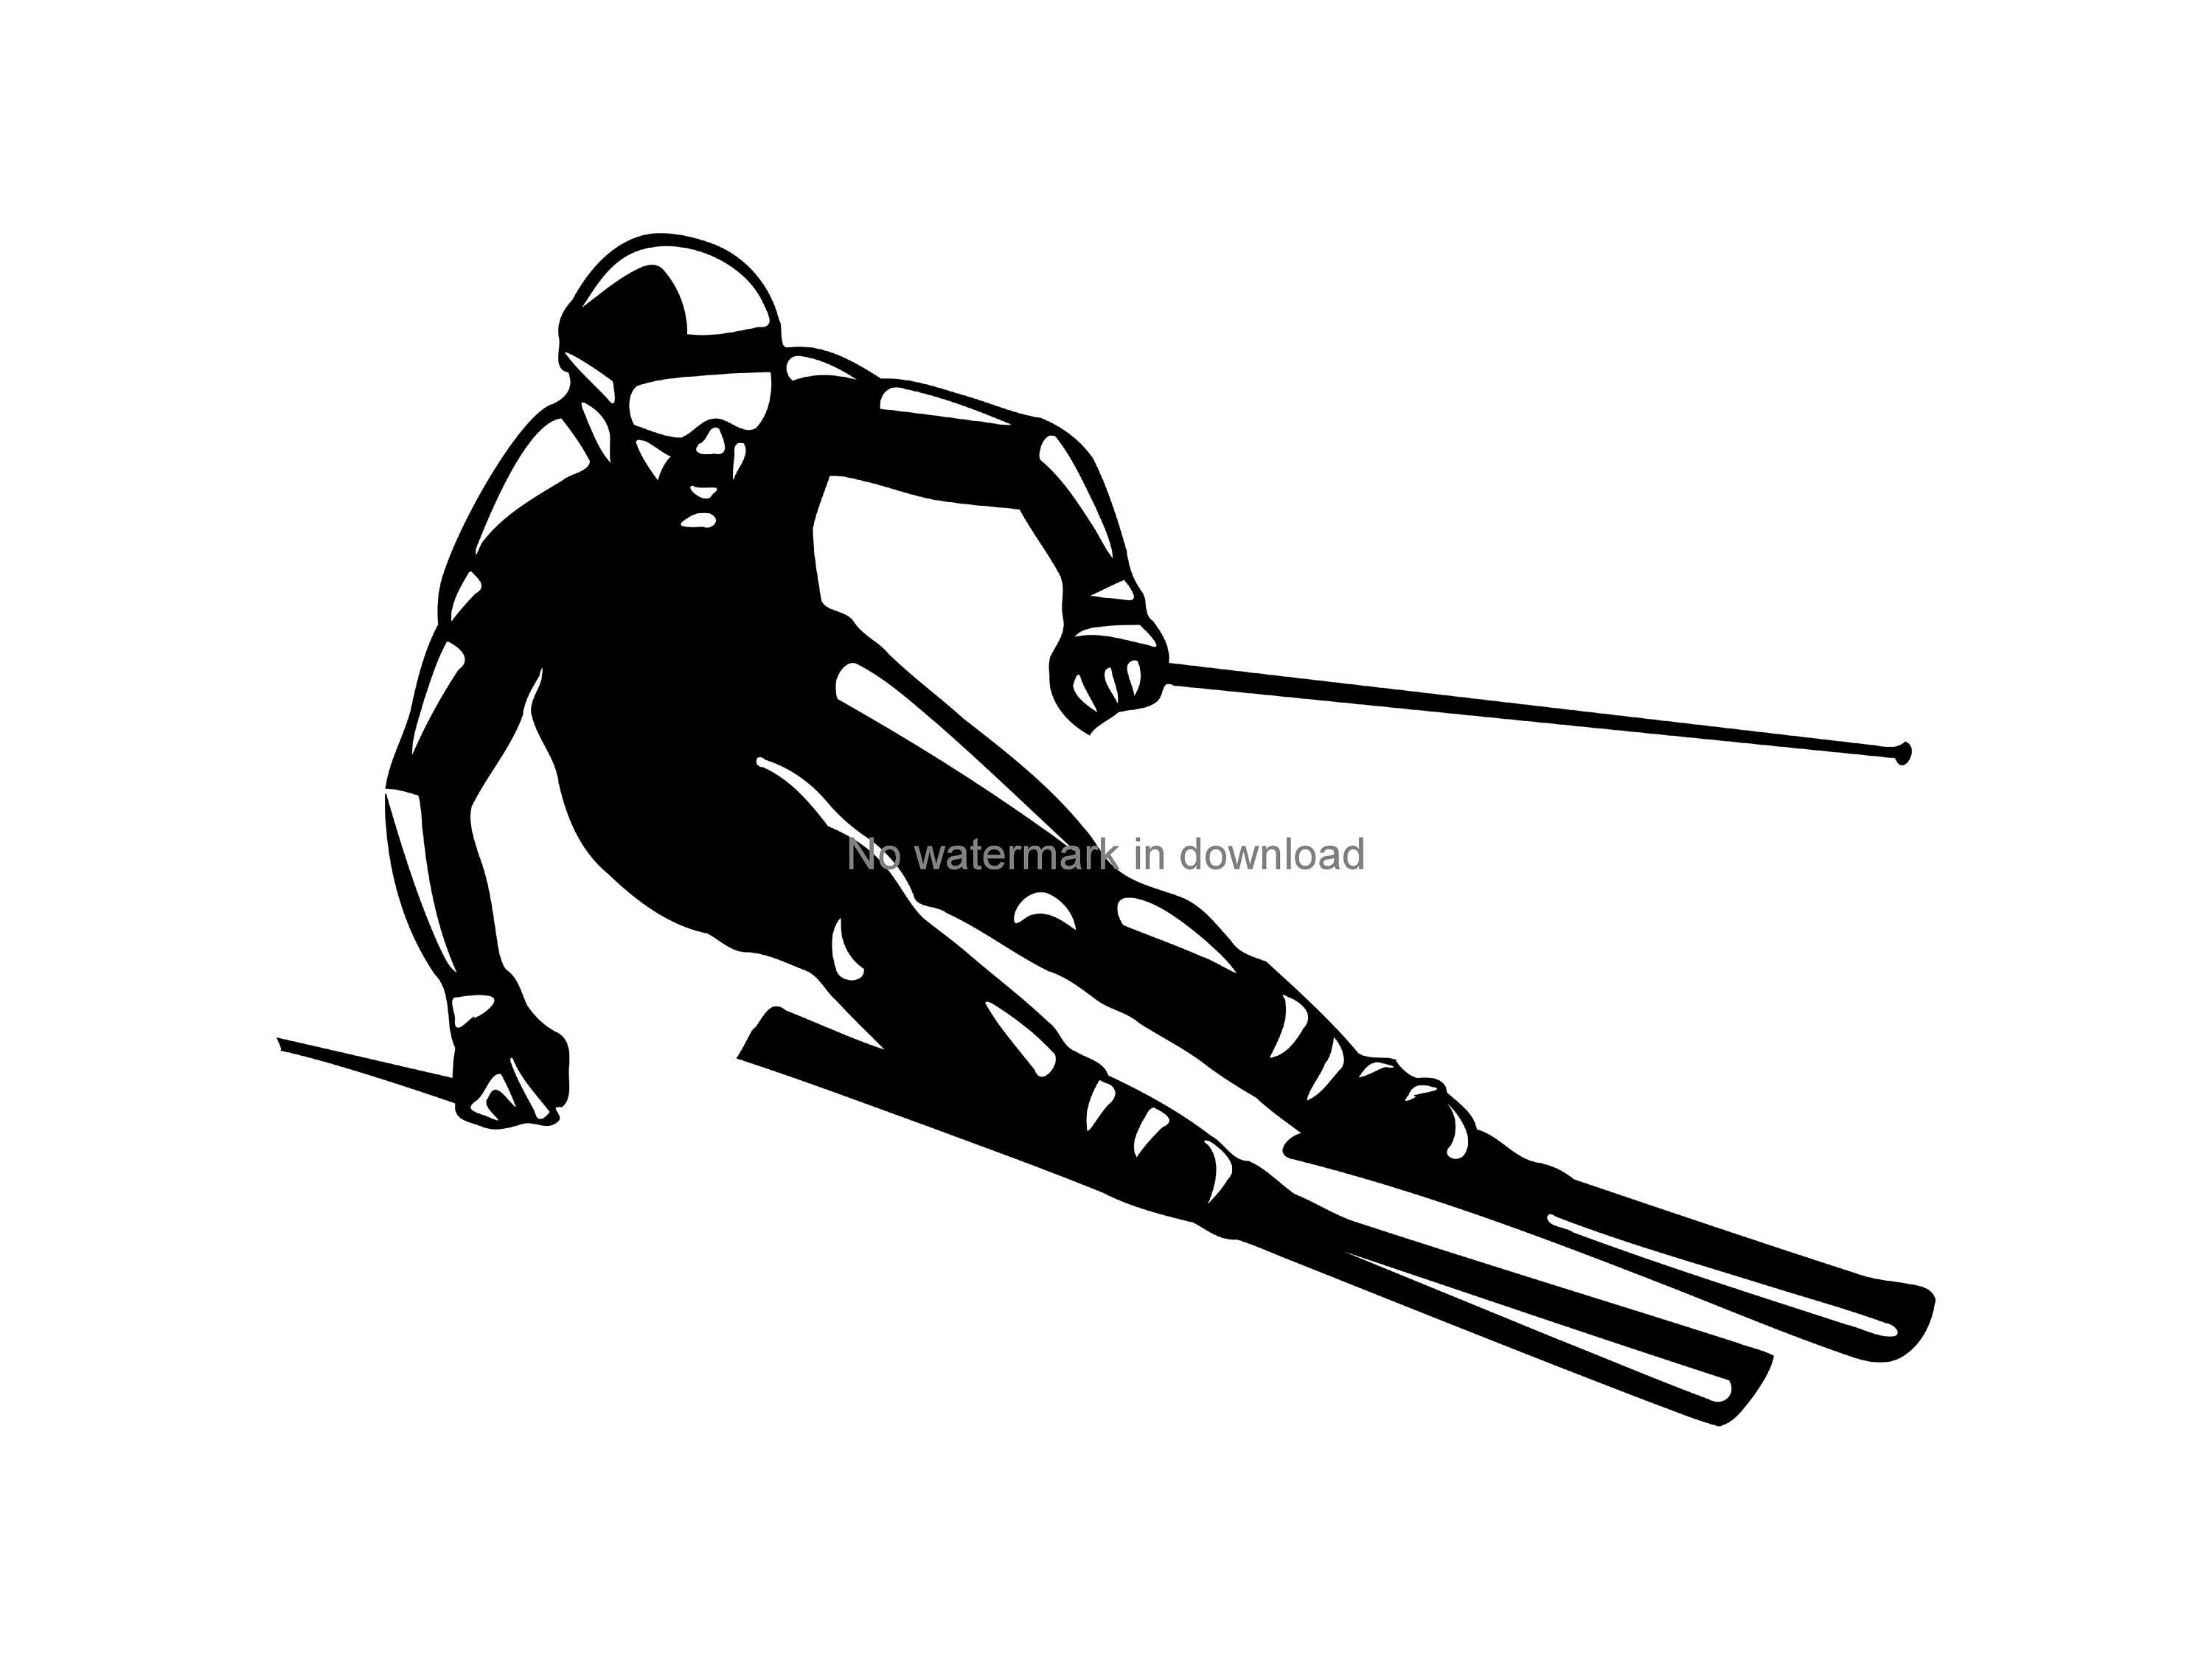 Skier Clipart, Skiing svg, Winter Sports, Skiing Clip Art, Downhill Skier,  Snow Skier Silhouette Art, Skiing Vector, Skiing Clipart Png Dxf.